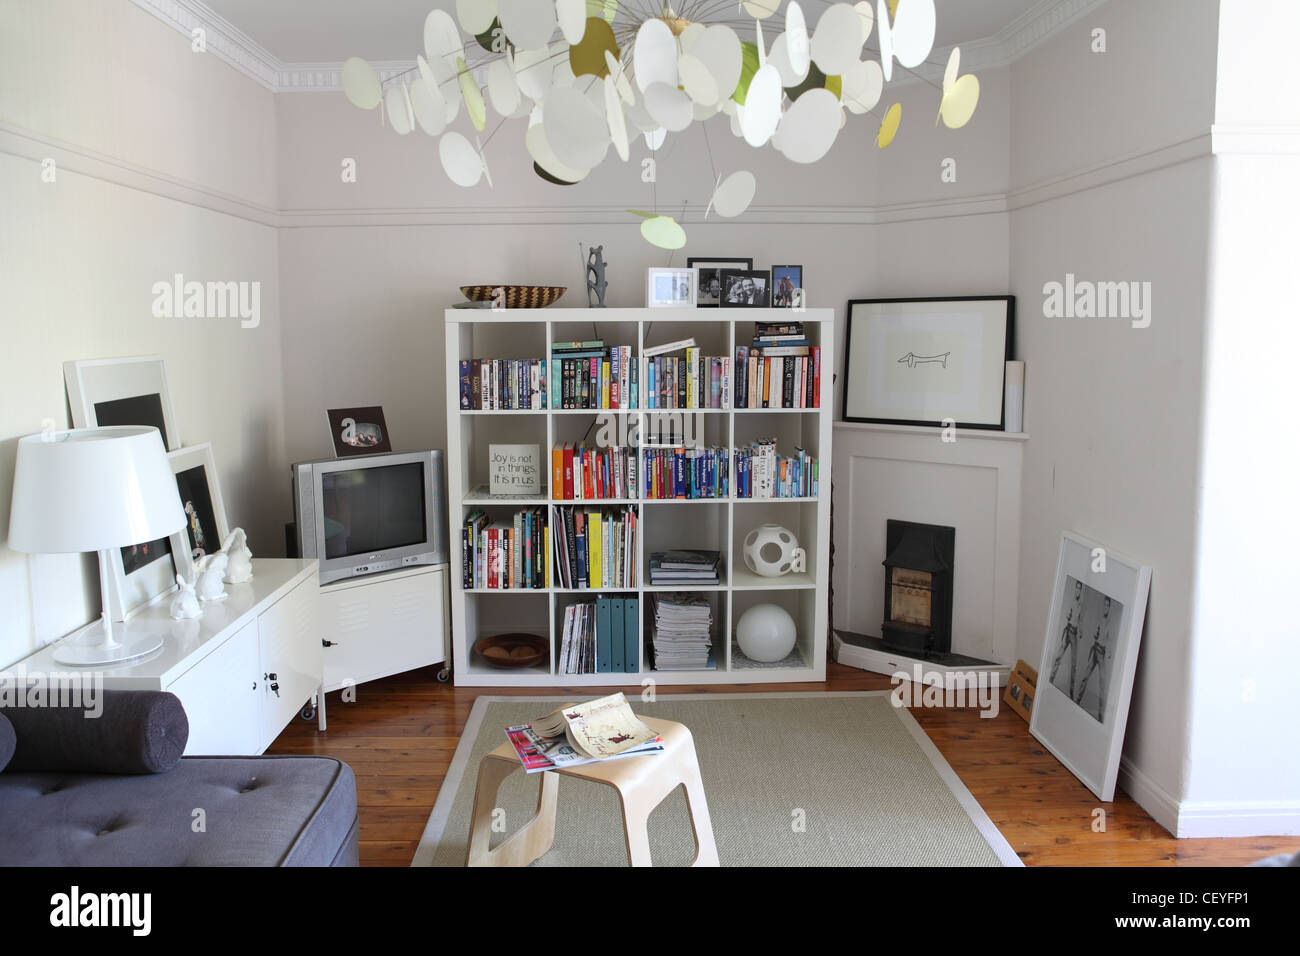 Apartment in Sydney Living room interiwith corner sofa from Habitat, white metallic low cabinet from Ikea, Butterfly Stock Photo